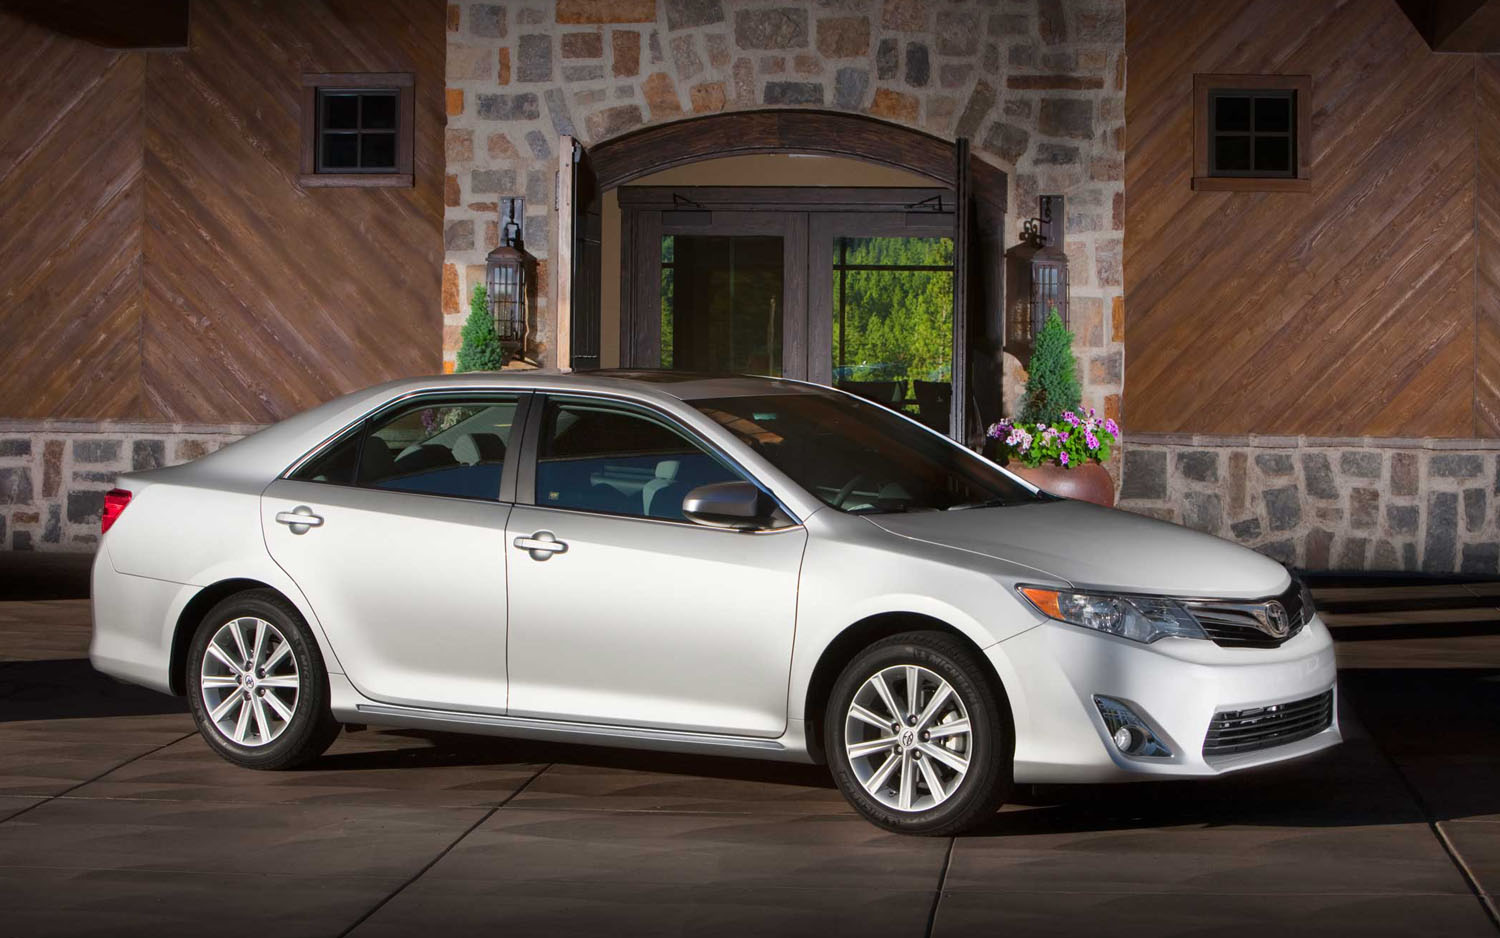 All 2012 Toyota Camrys Sold In U S Will Be Built In U S Motor Trend